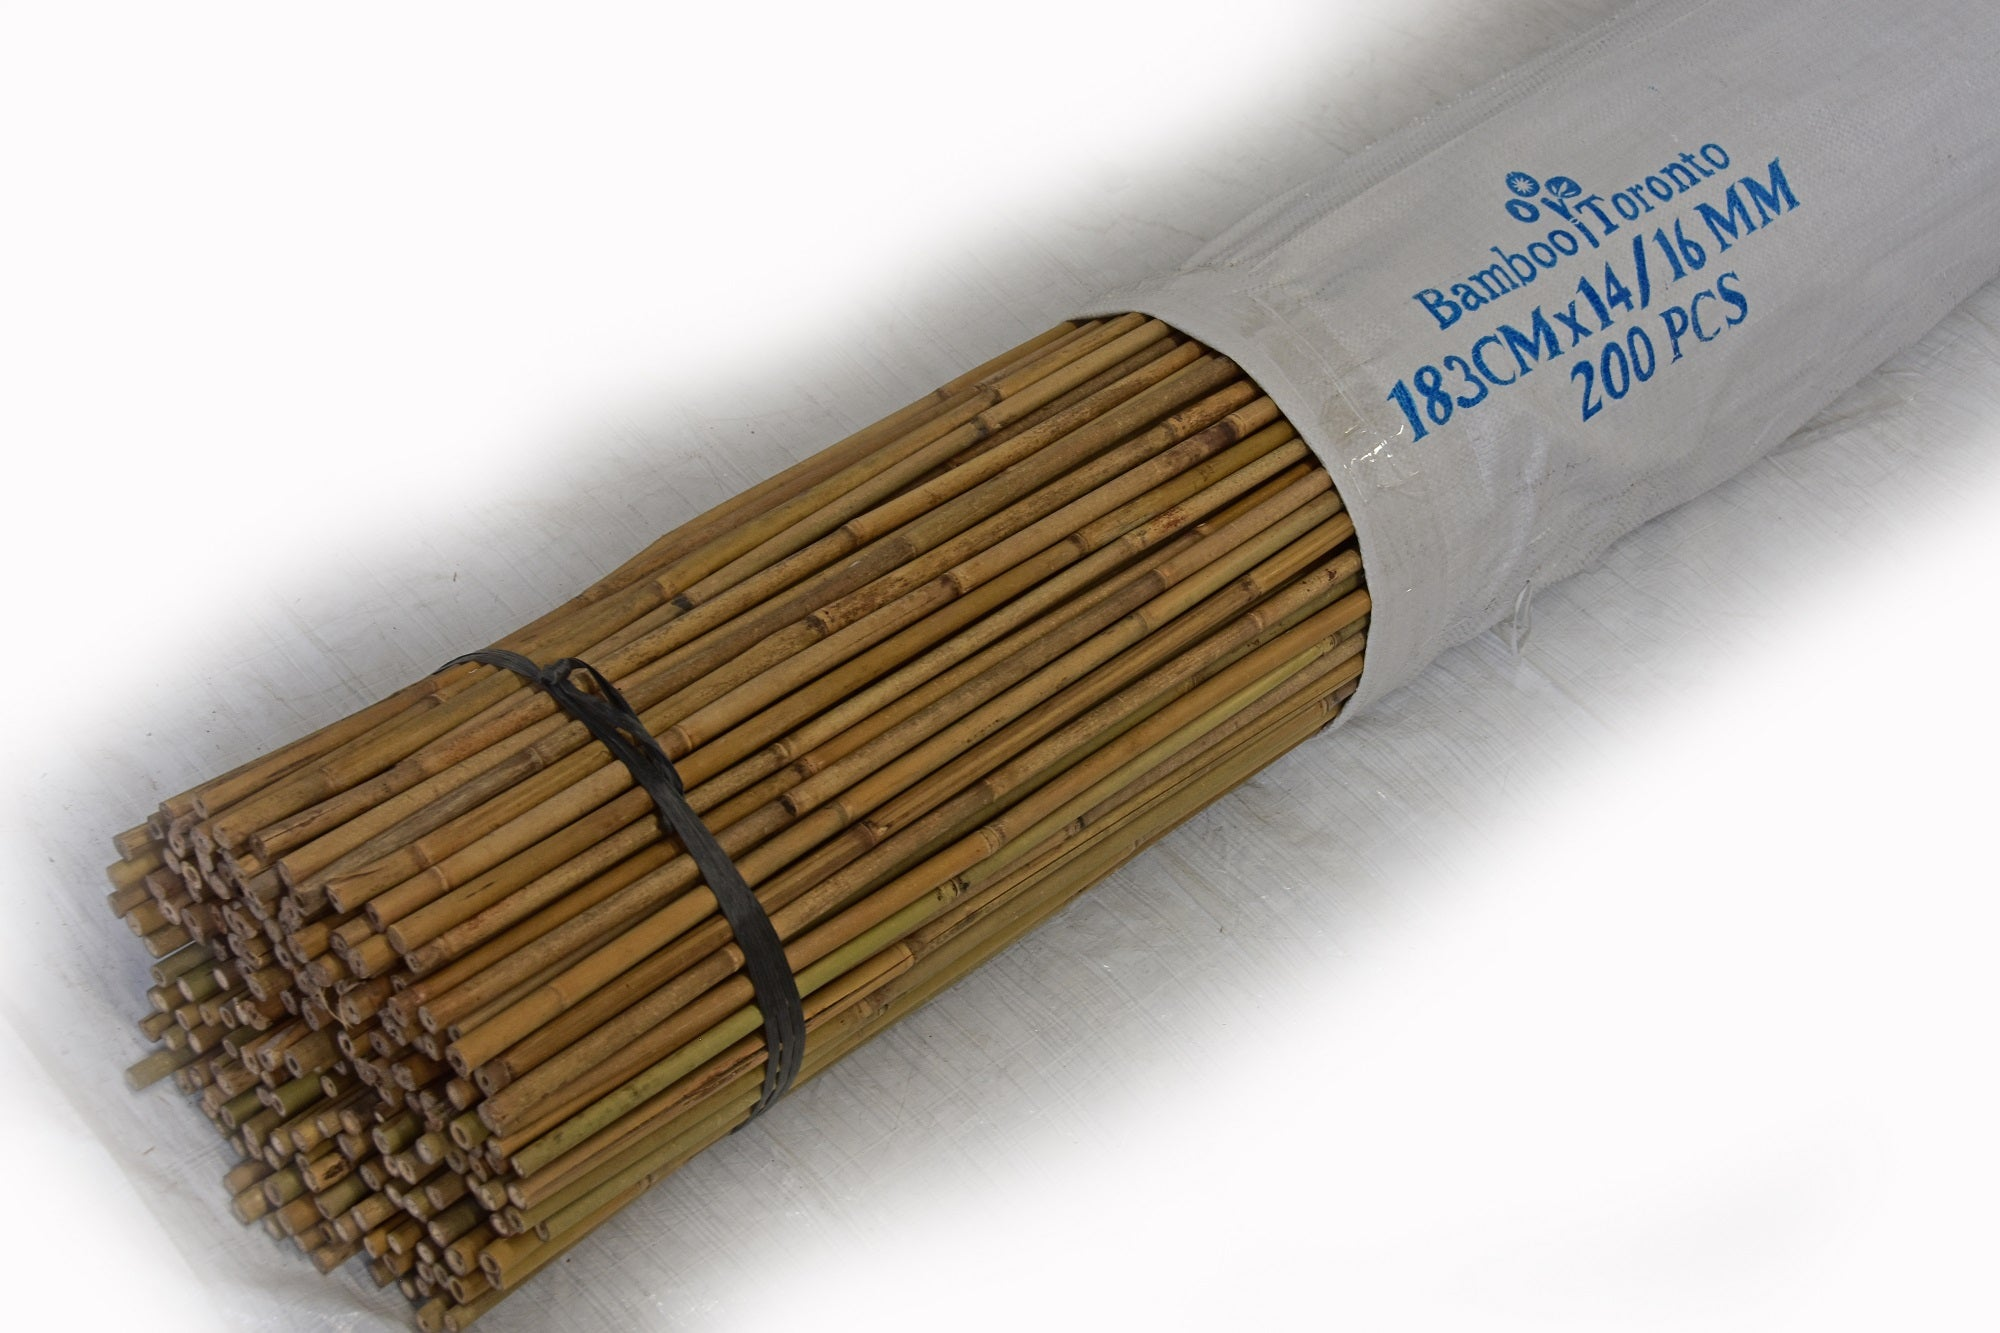 Tonkin Bamboo Pole 14-16mm x 4 to 7' Bundle of 200